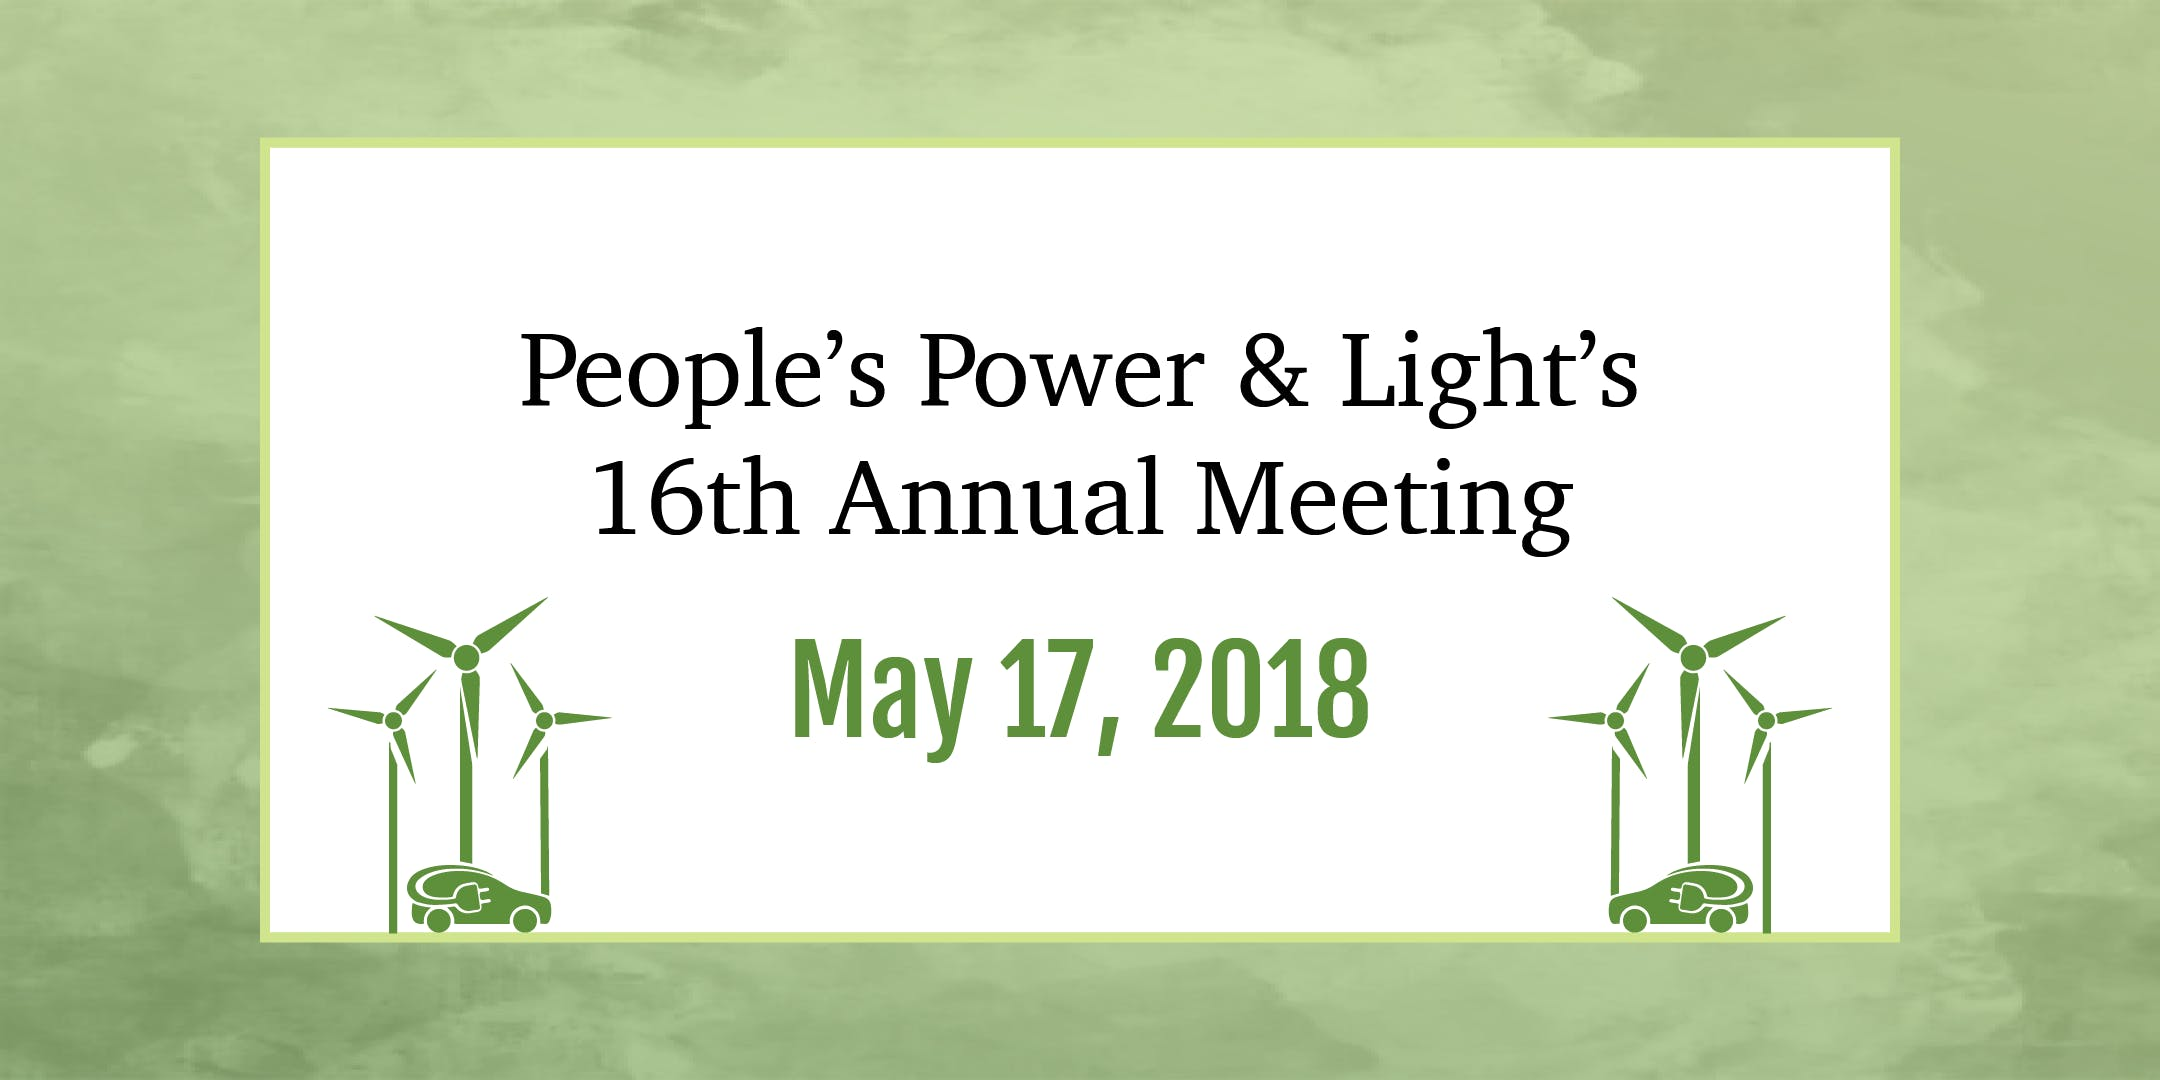 Peoples Power & Lights 16th Annual Meeting